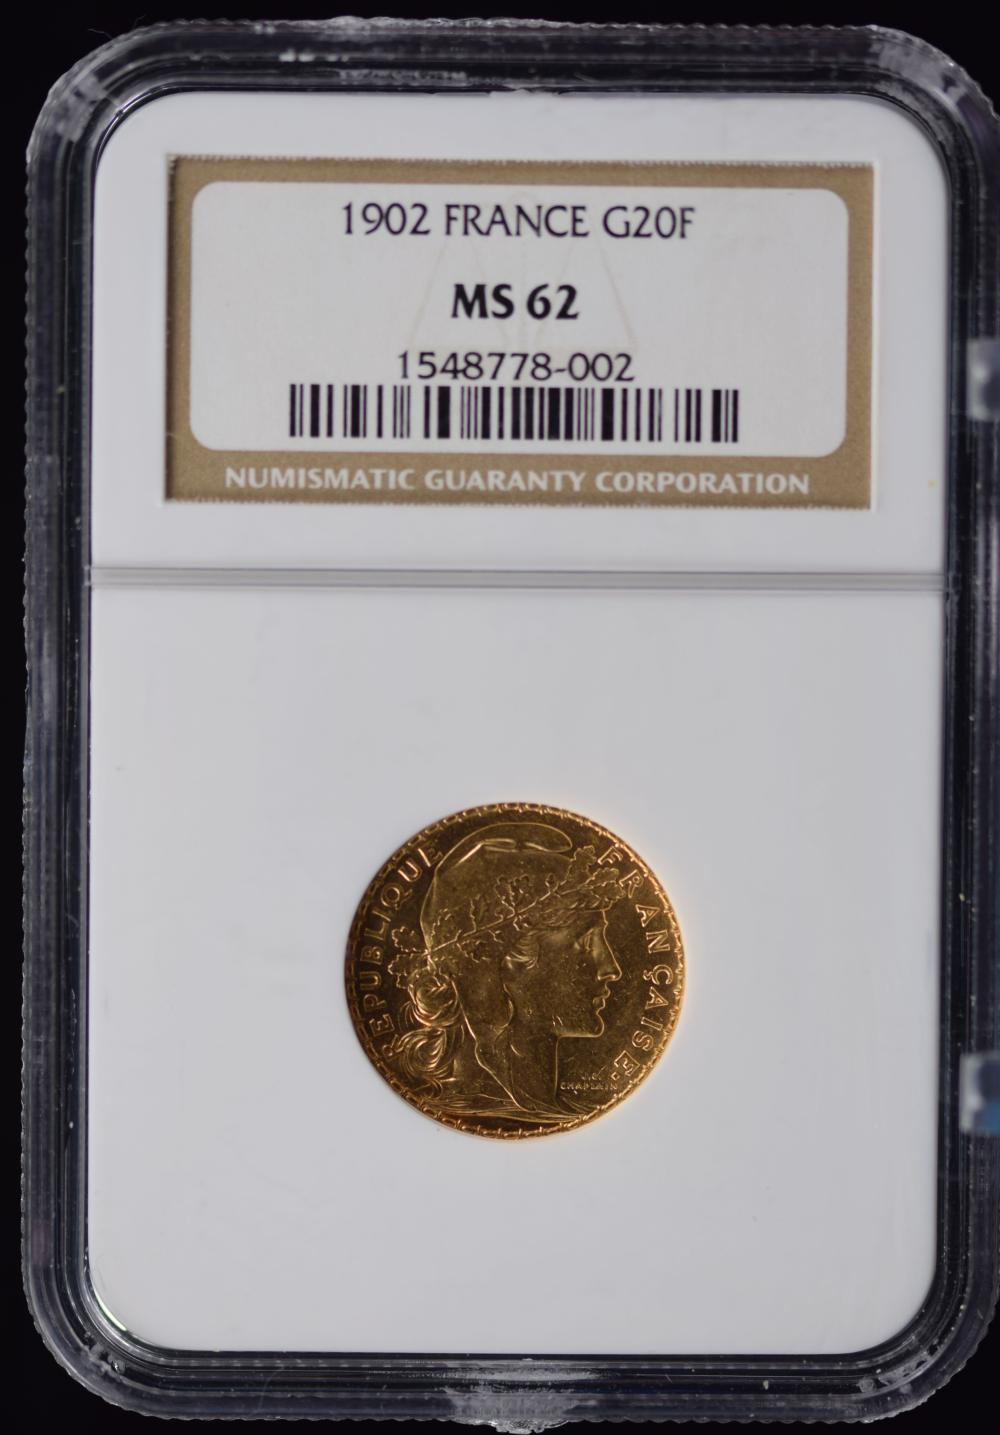 1902 Gold 20F France NGC MS-62